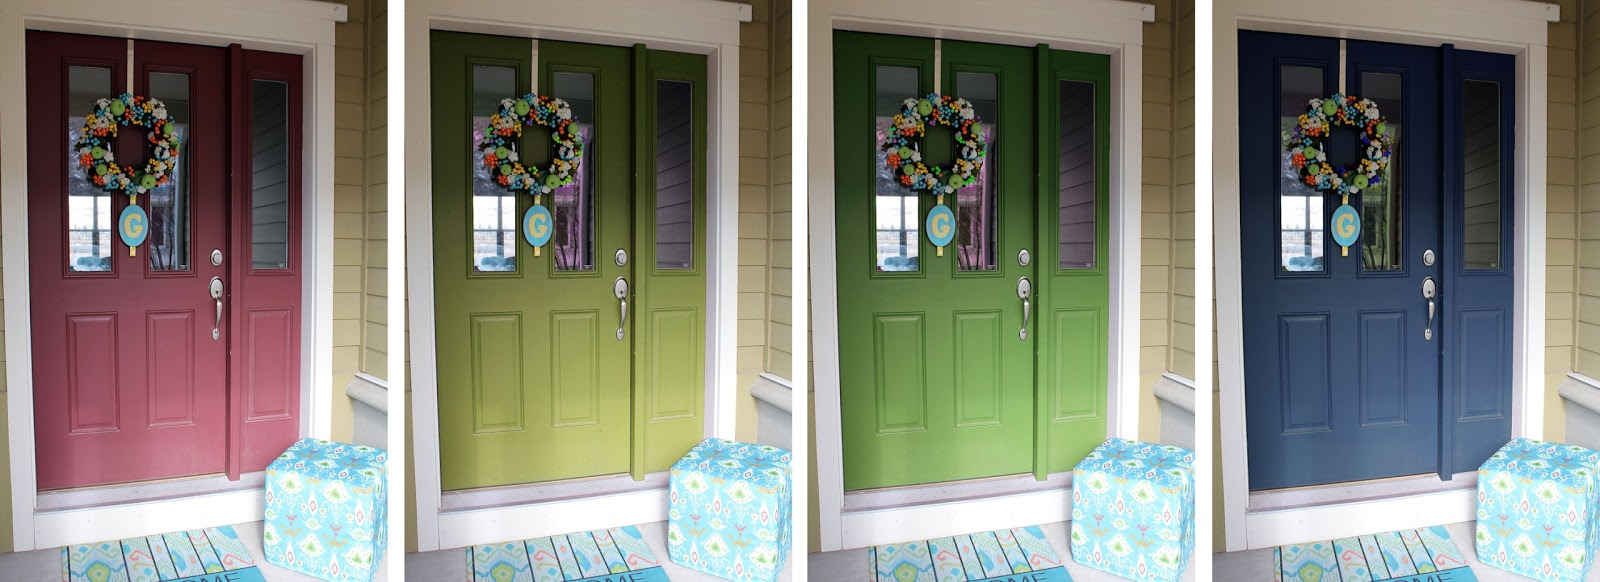 Changing The Color Of The Front Door